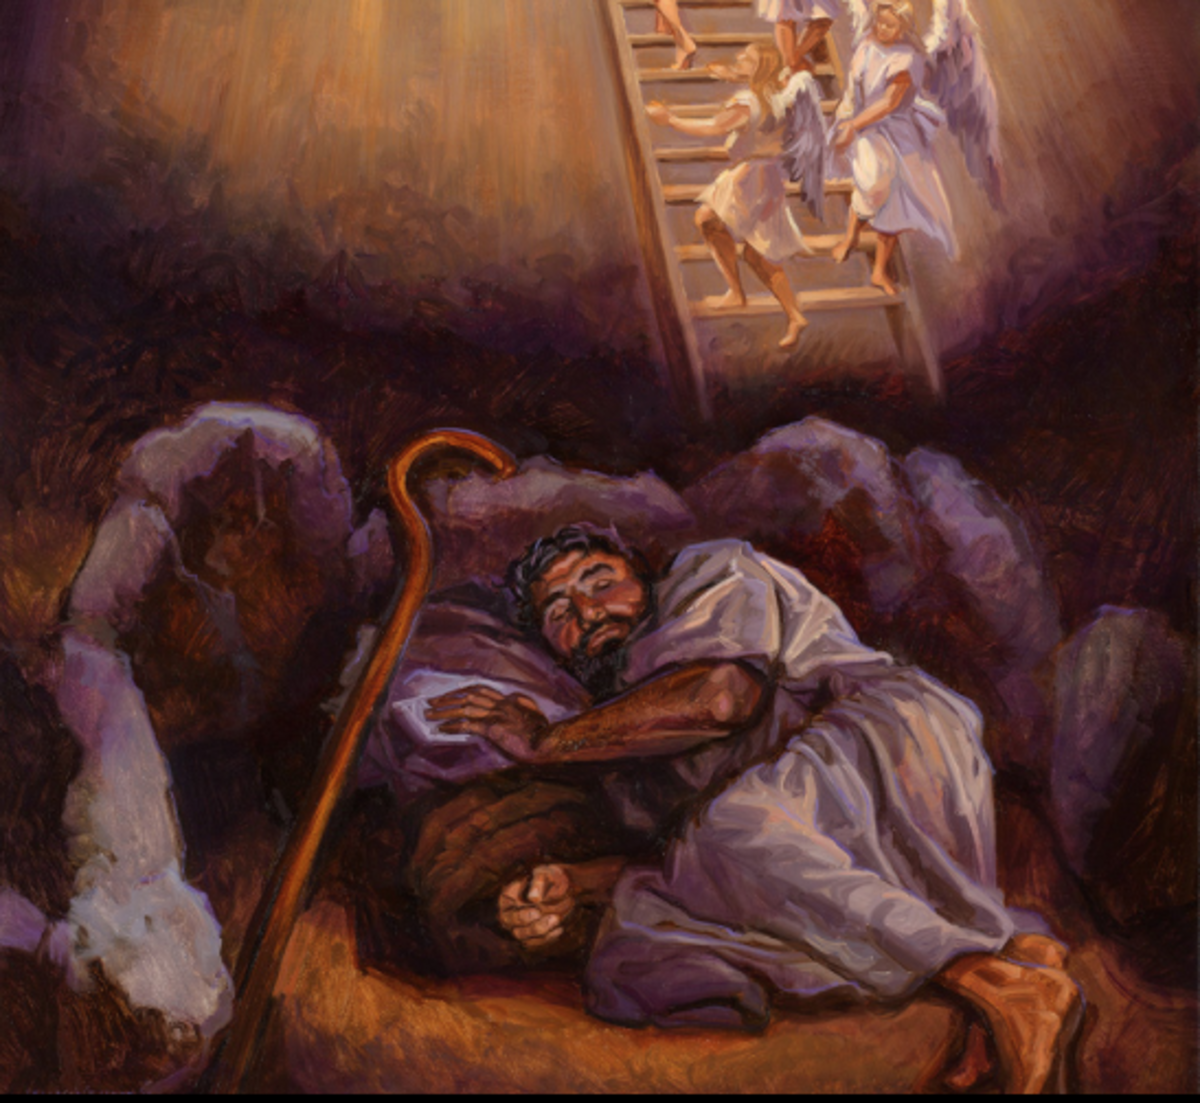 Jacob dreamed of a miraculous ladder that linked heaven and earth.